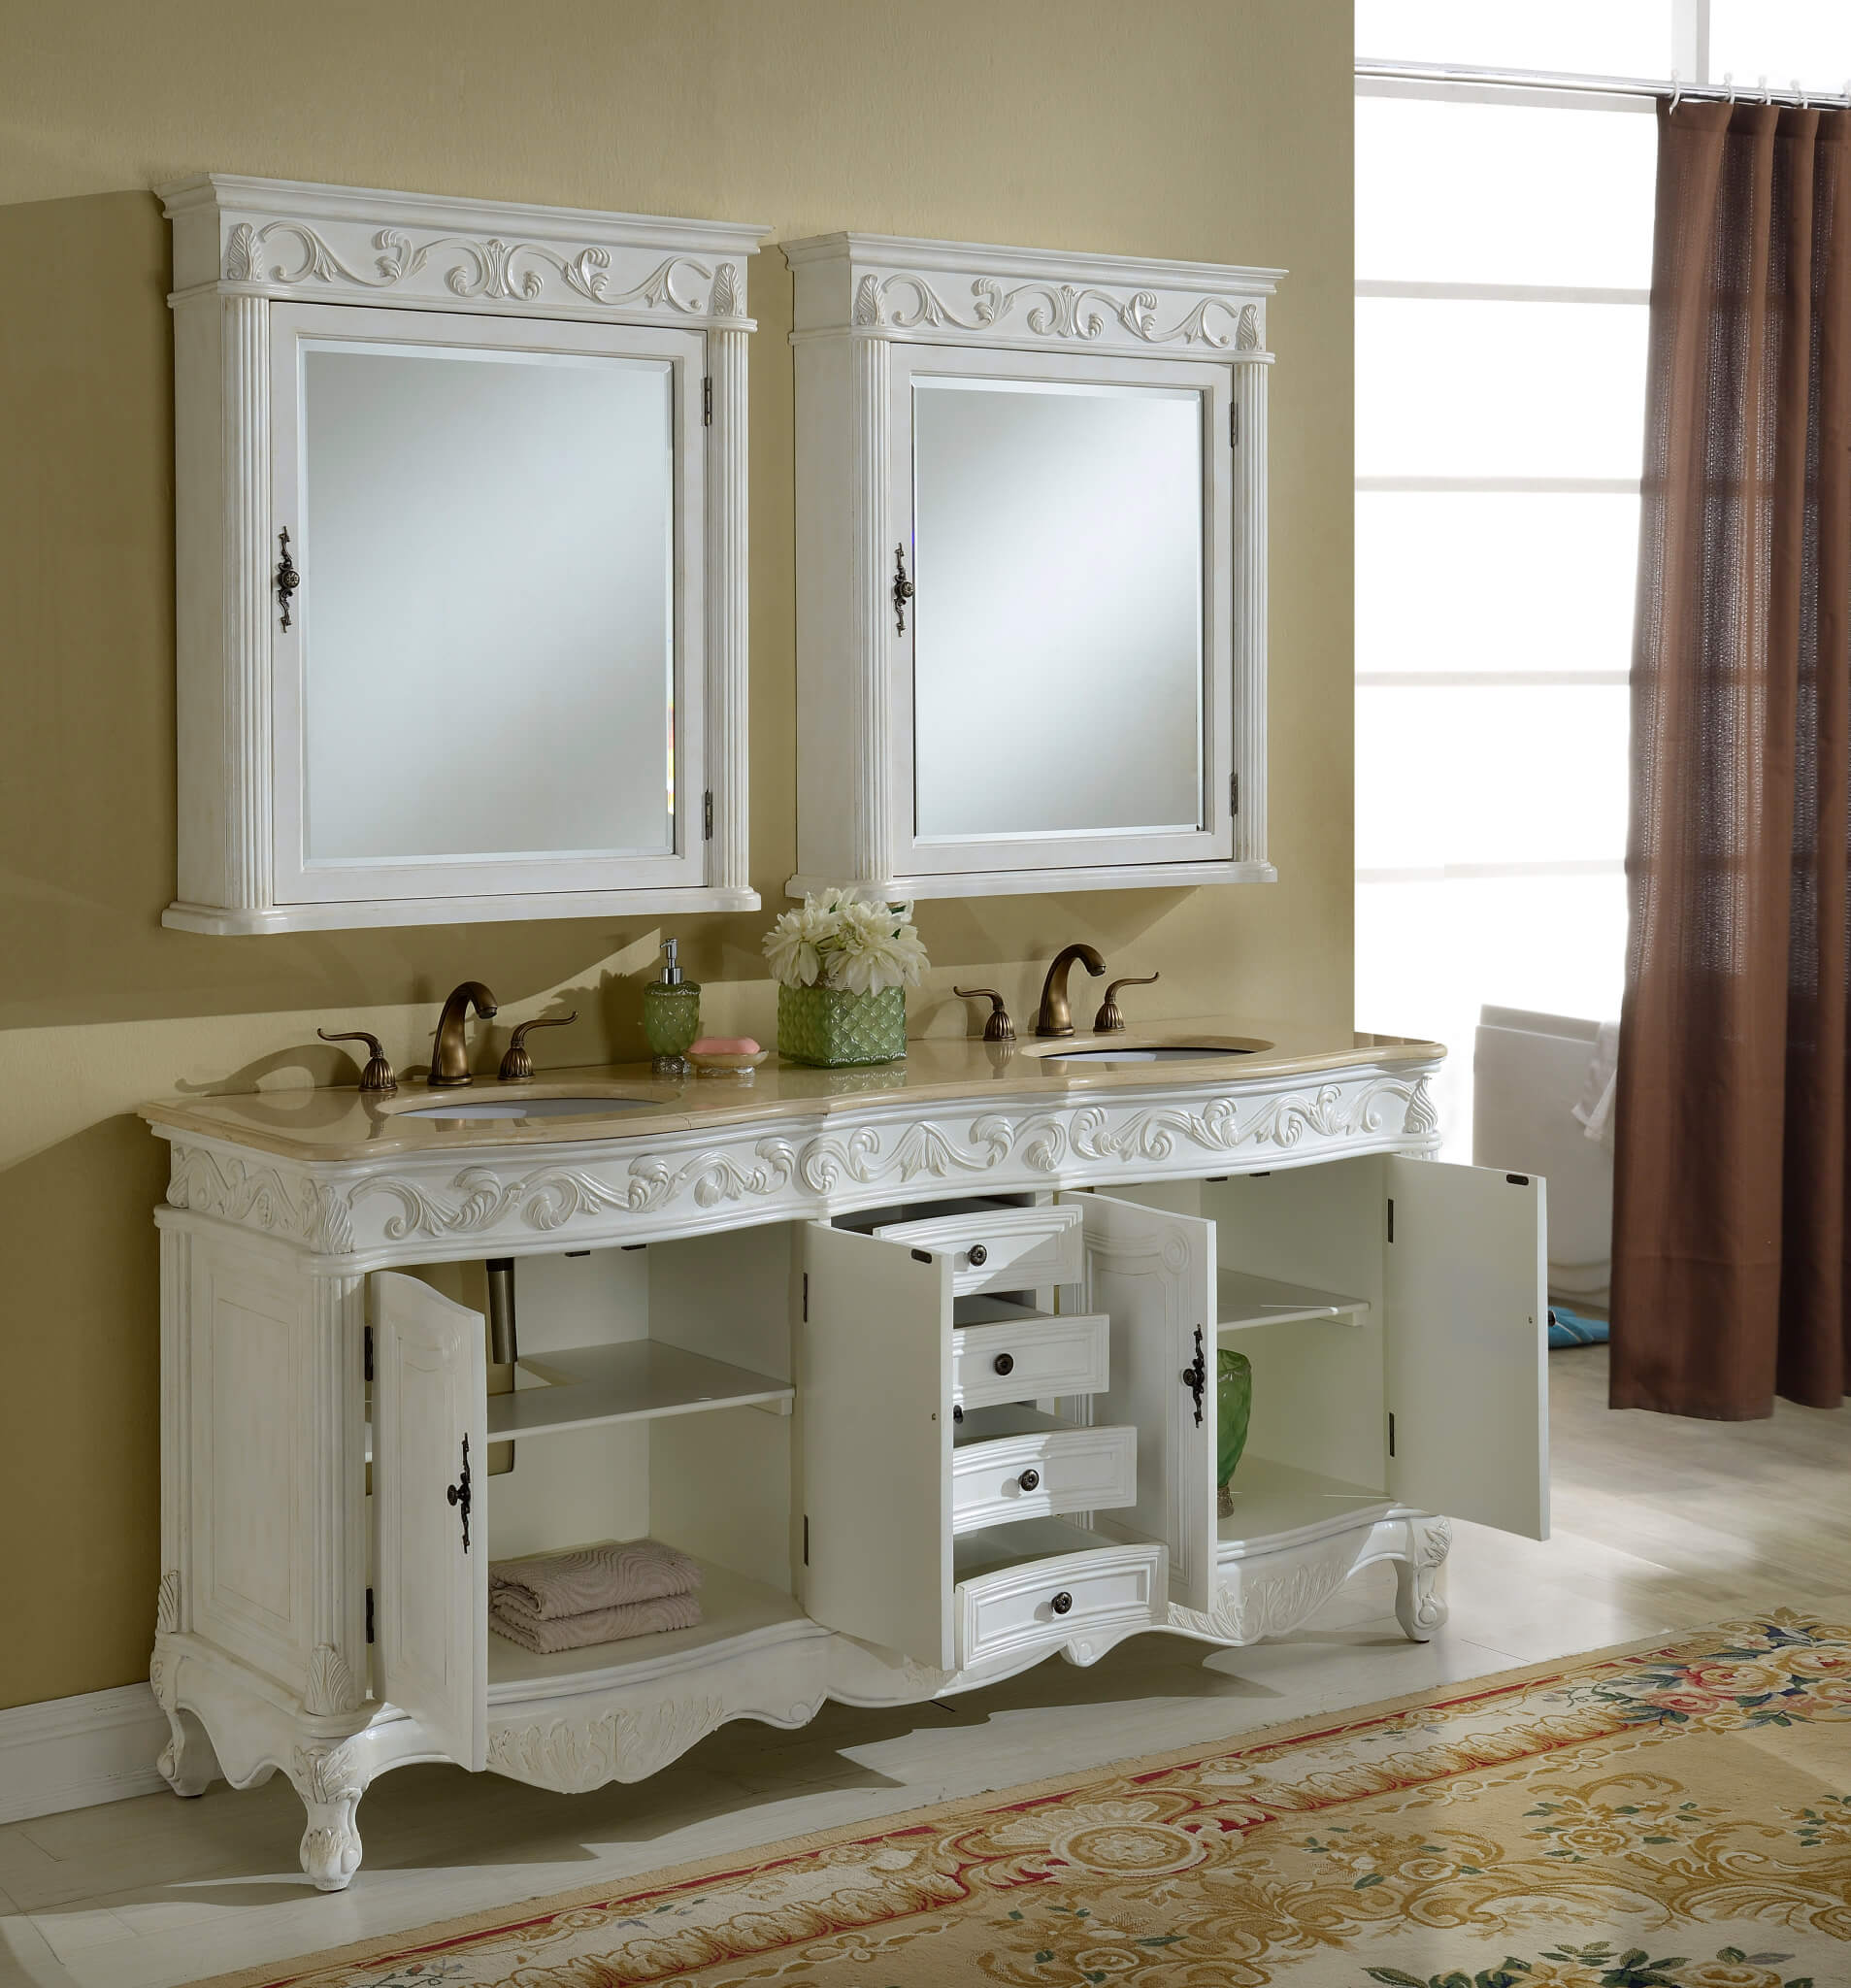 72 Tuscany Antique White Double Sink Bathroom Vanity Antique Recreations